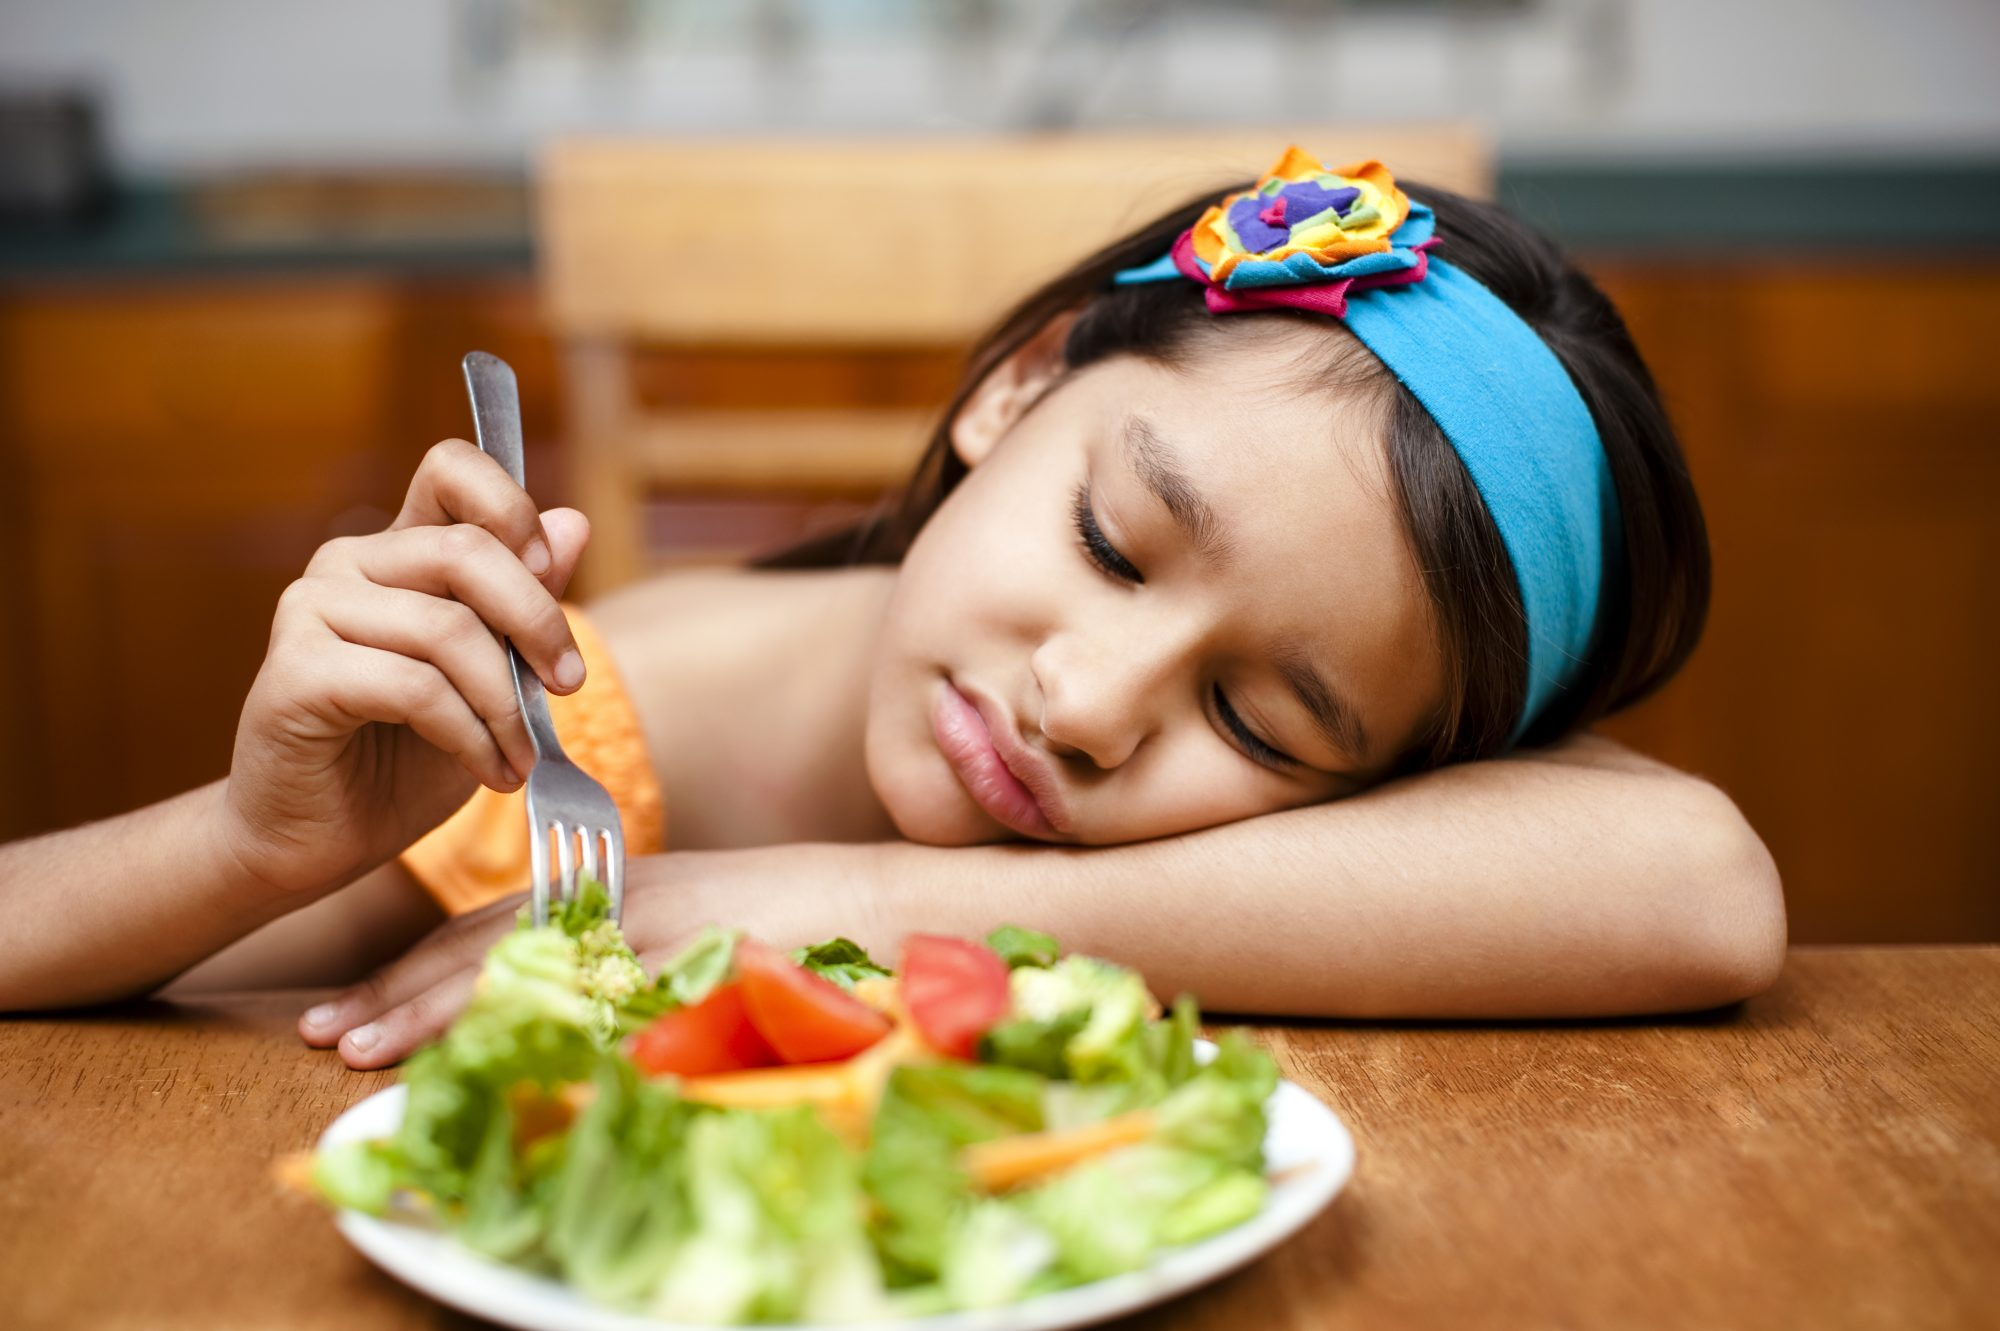 An image of a little girl sad at the dinner table.